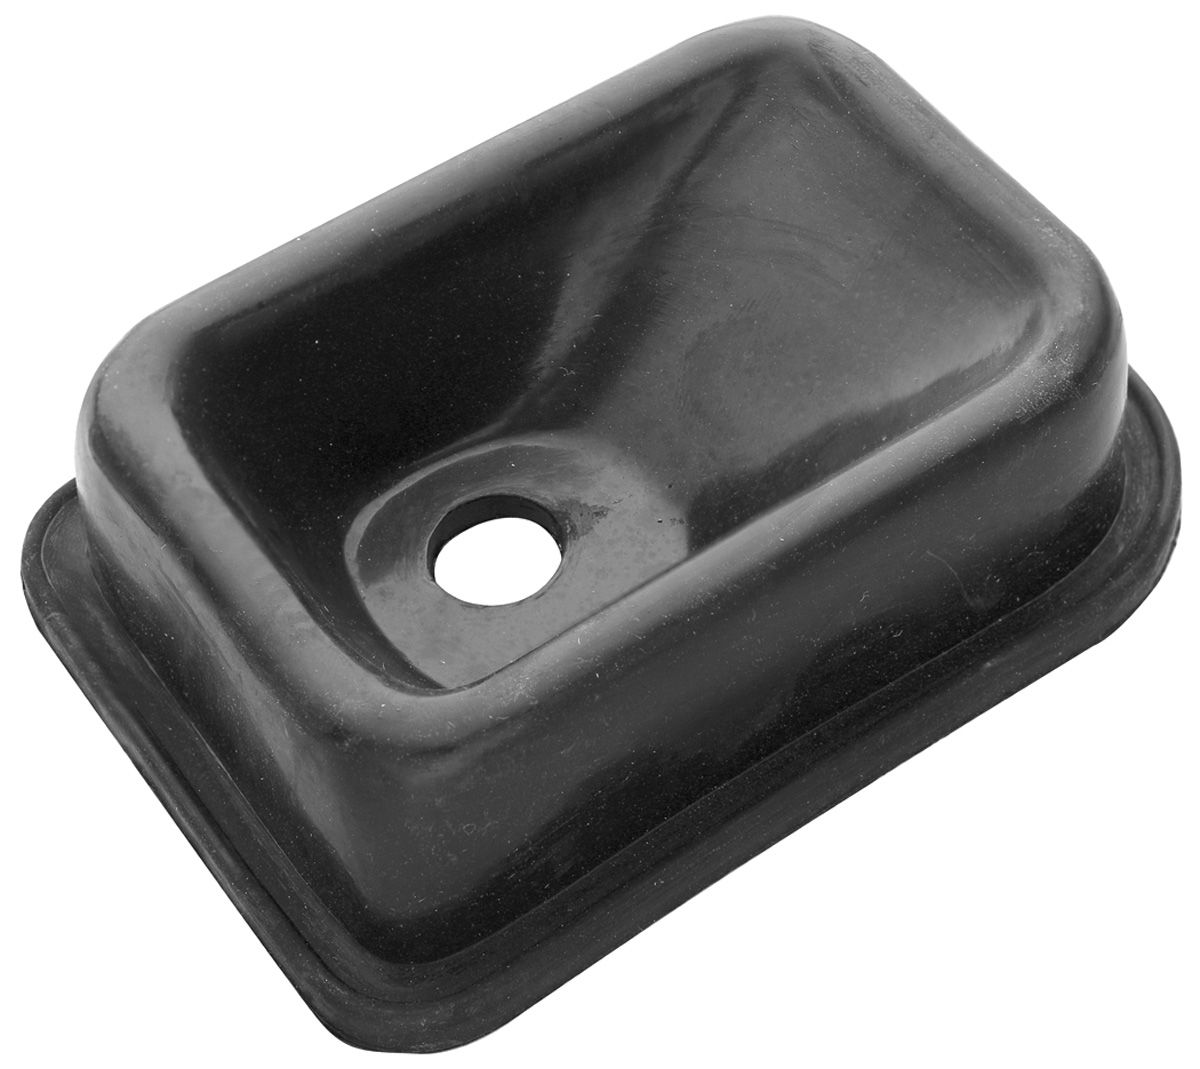 Photo of Shifter Boot, Rubber w/o console, w/buckets & reverse lockout